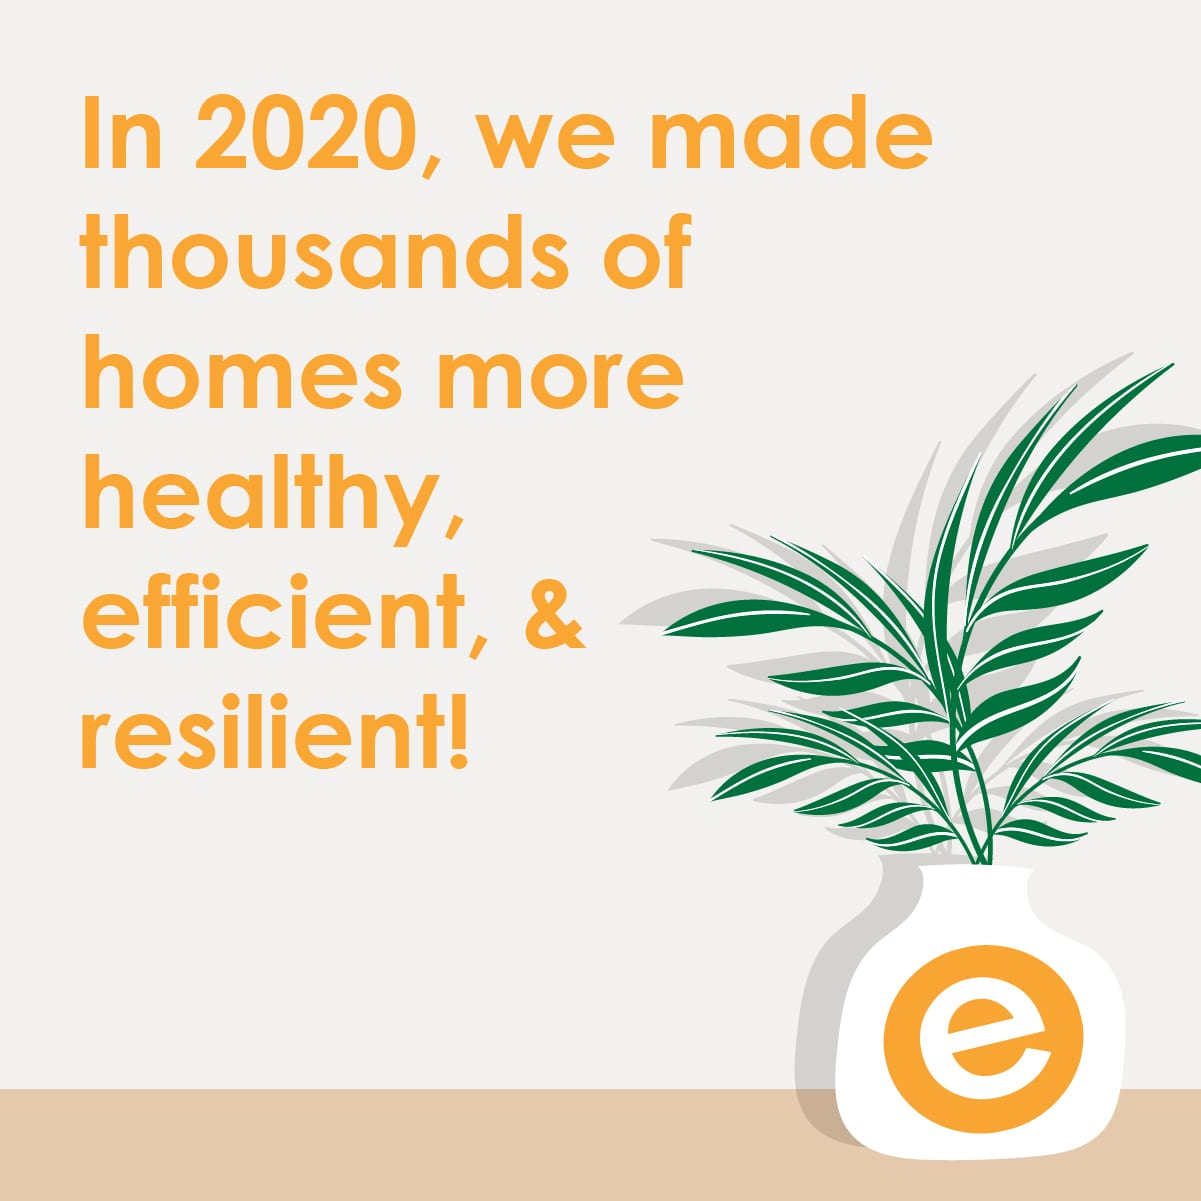 In 2020, we made thousands of homes more healthy, efficient, and resilient